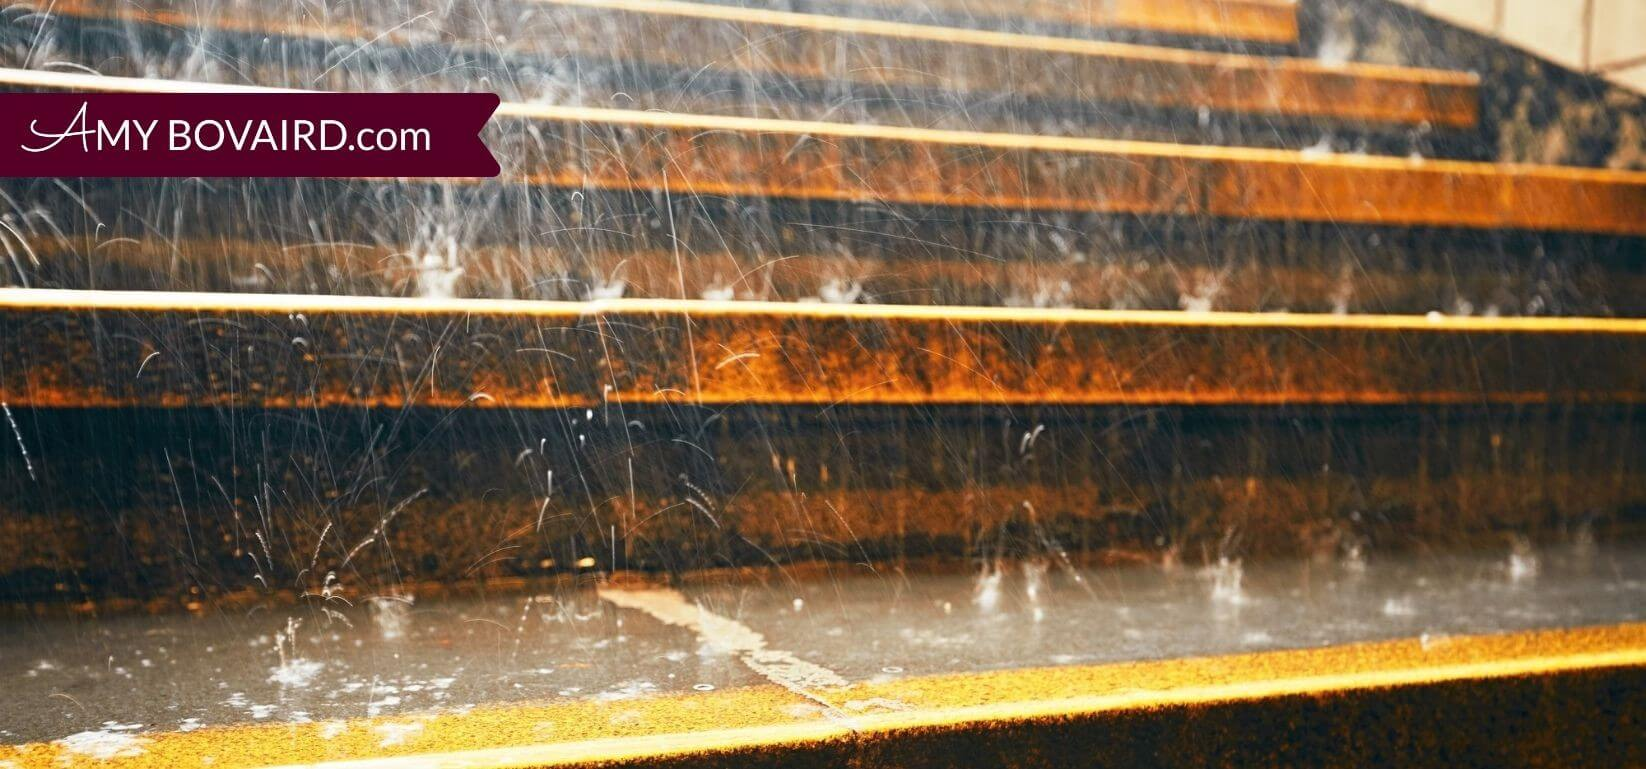 closeup image of heavy rain on outdoor steps